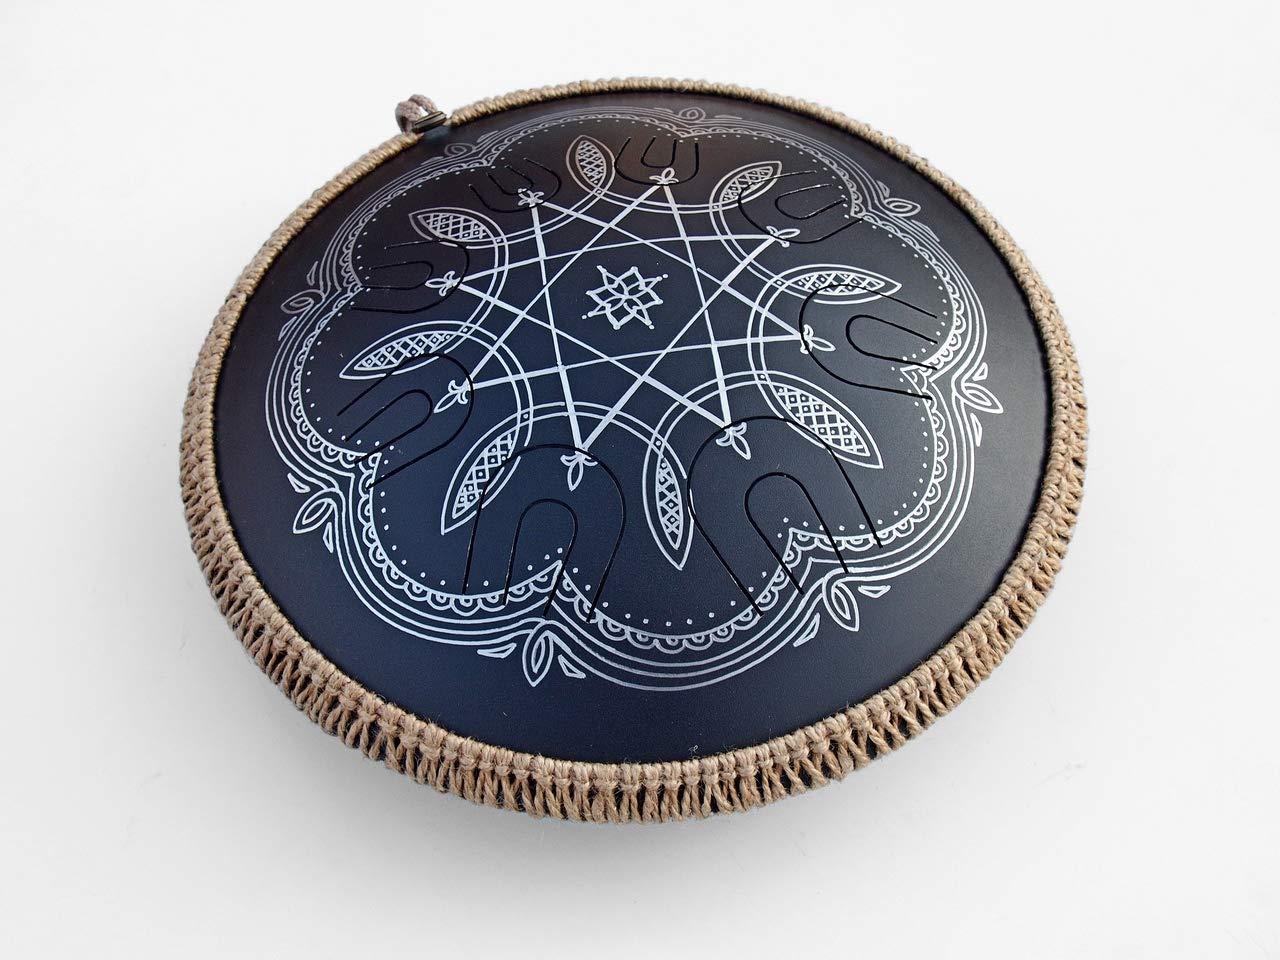 GUDA DRUM Coin with Rope Decoration FREE Mallets and Travel Bag